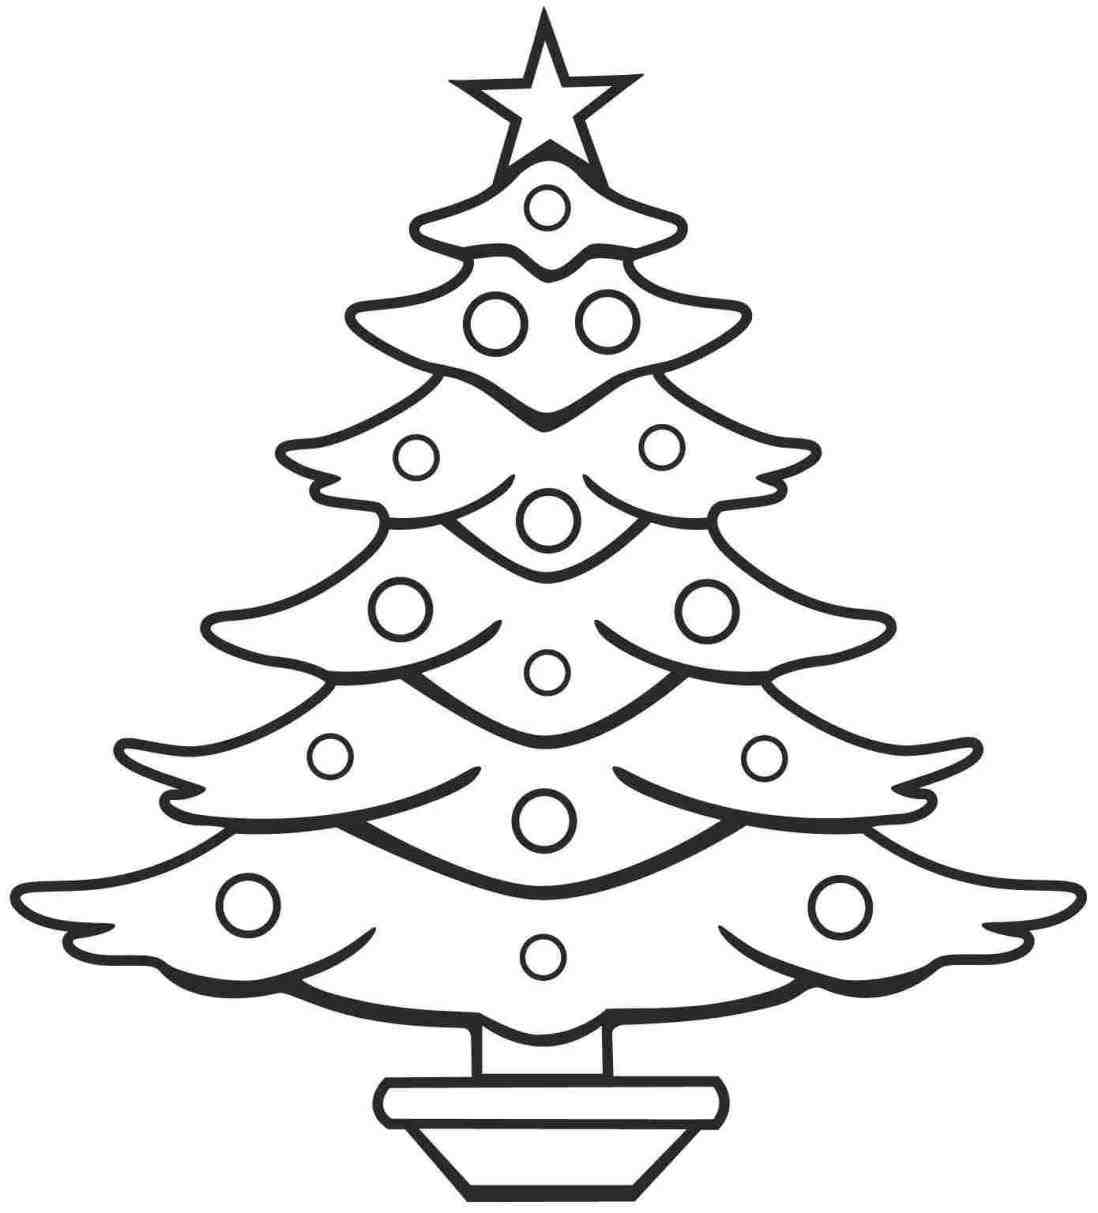 1098x1213 tree christmas trees drawings for kids line drawing free download